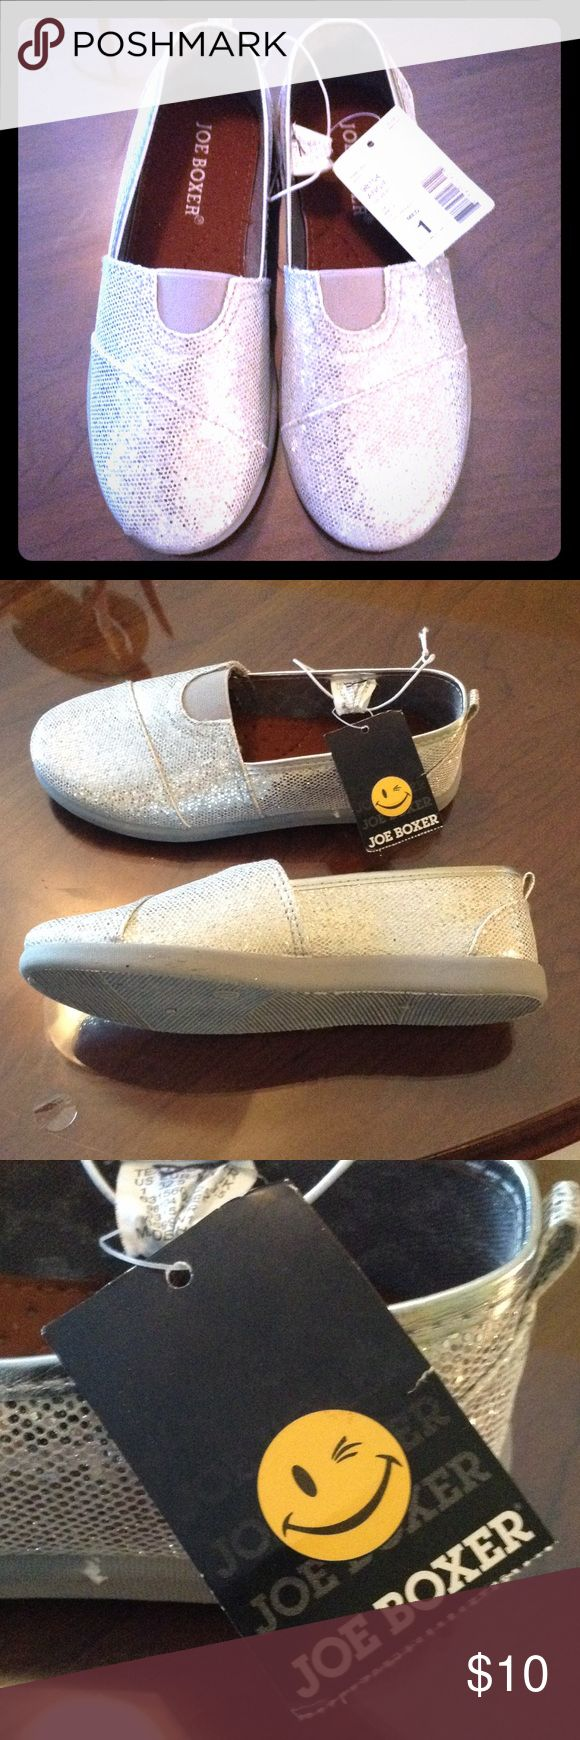 Does your little girl like sparkle? NWT Little girls size 1 Joe Boxer slip on shoes. Never worn, rubber soled shoes. Joe Boxer Shoes Sneakers